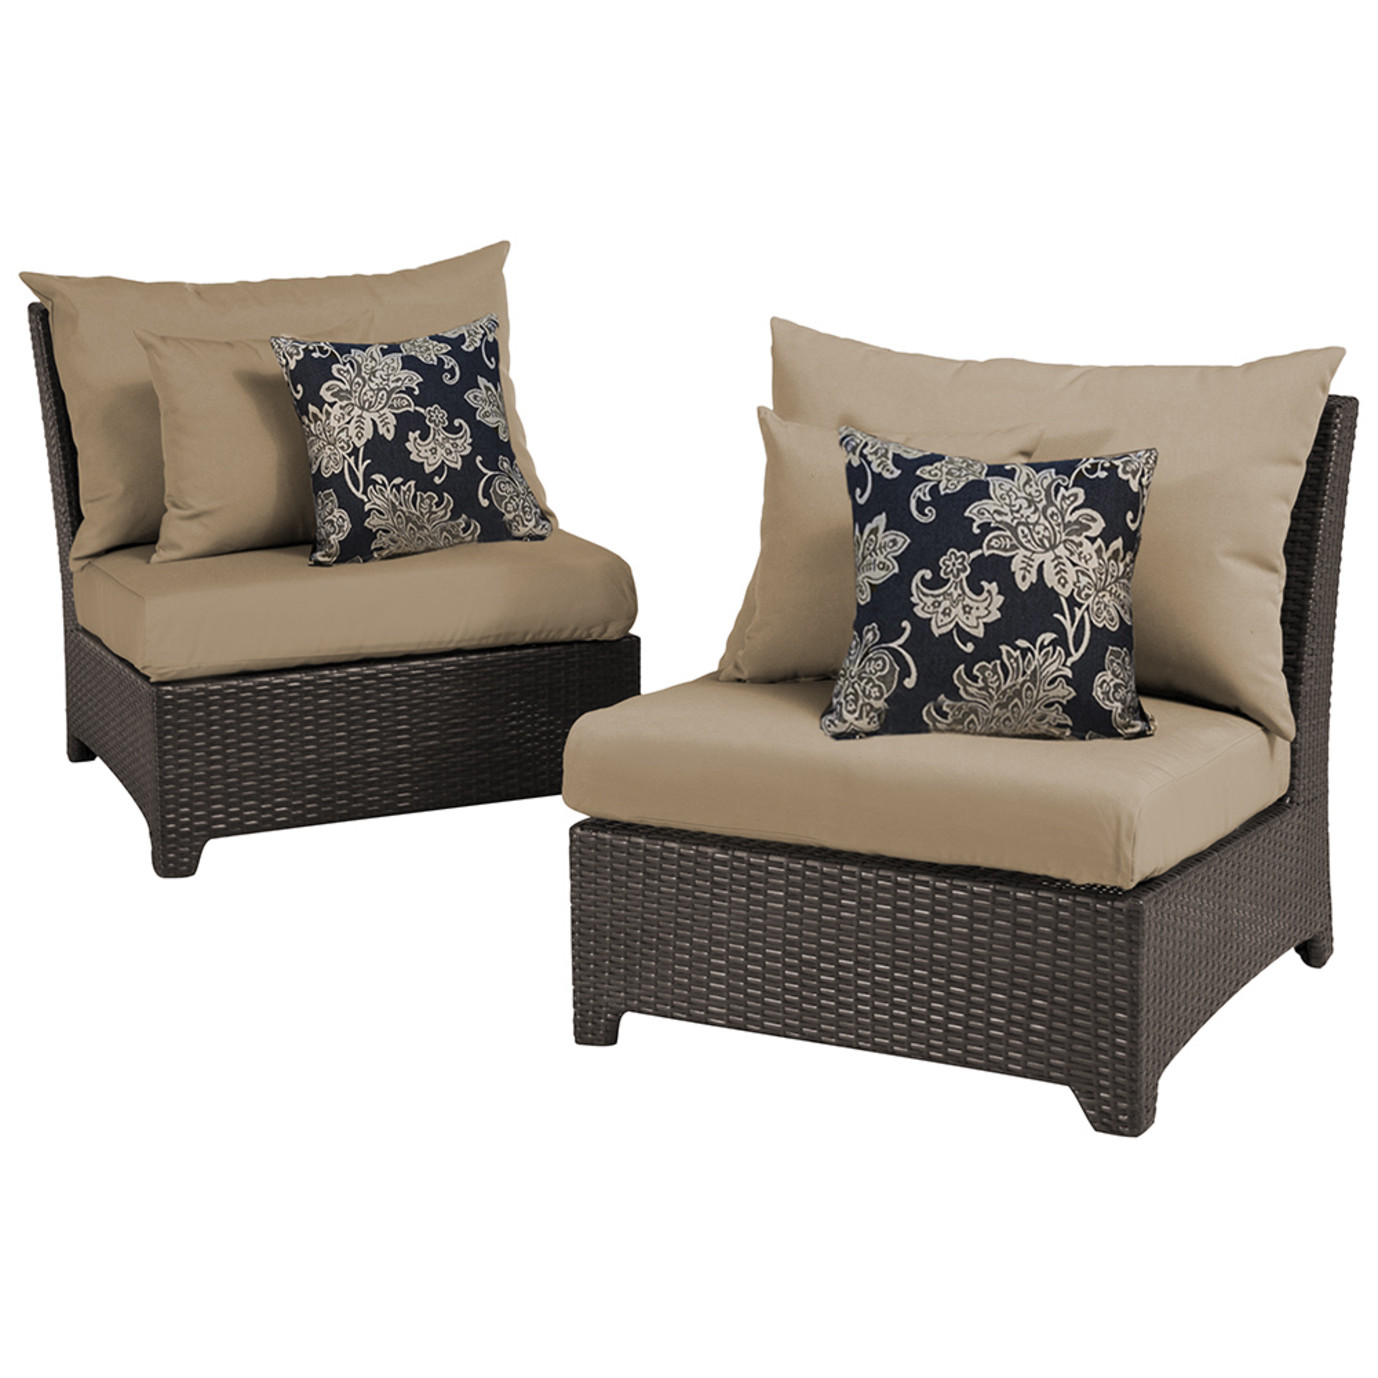 Deco Armless Chairs - Delano Beige